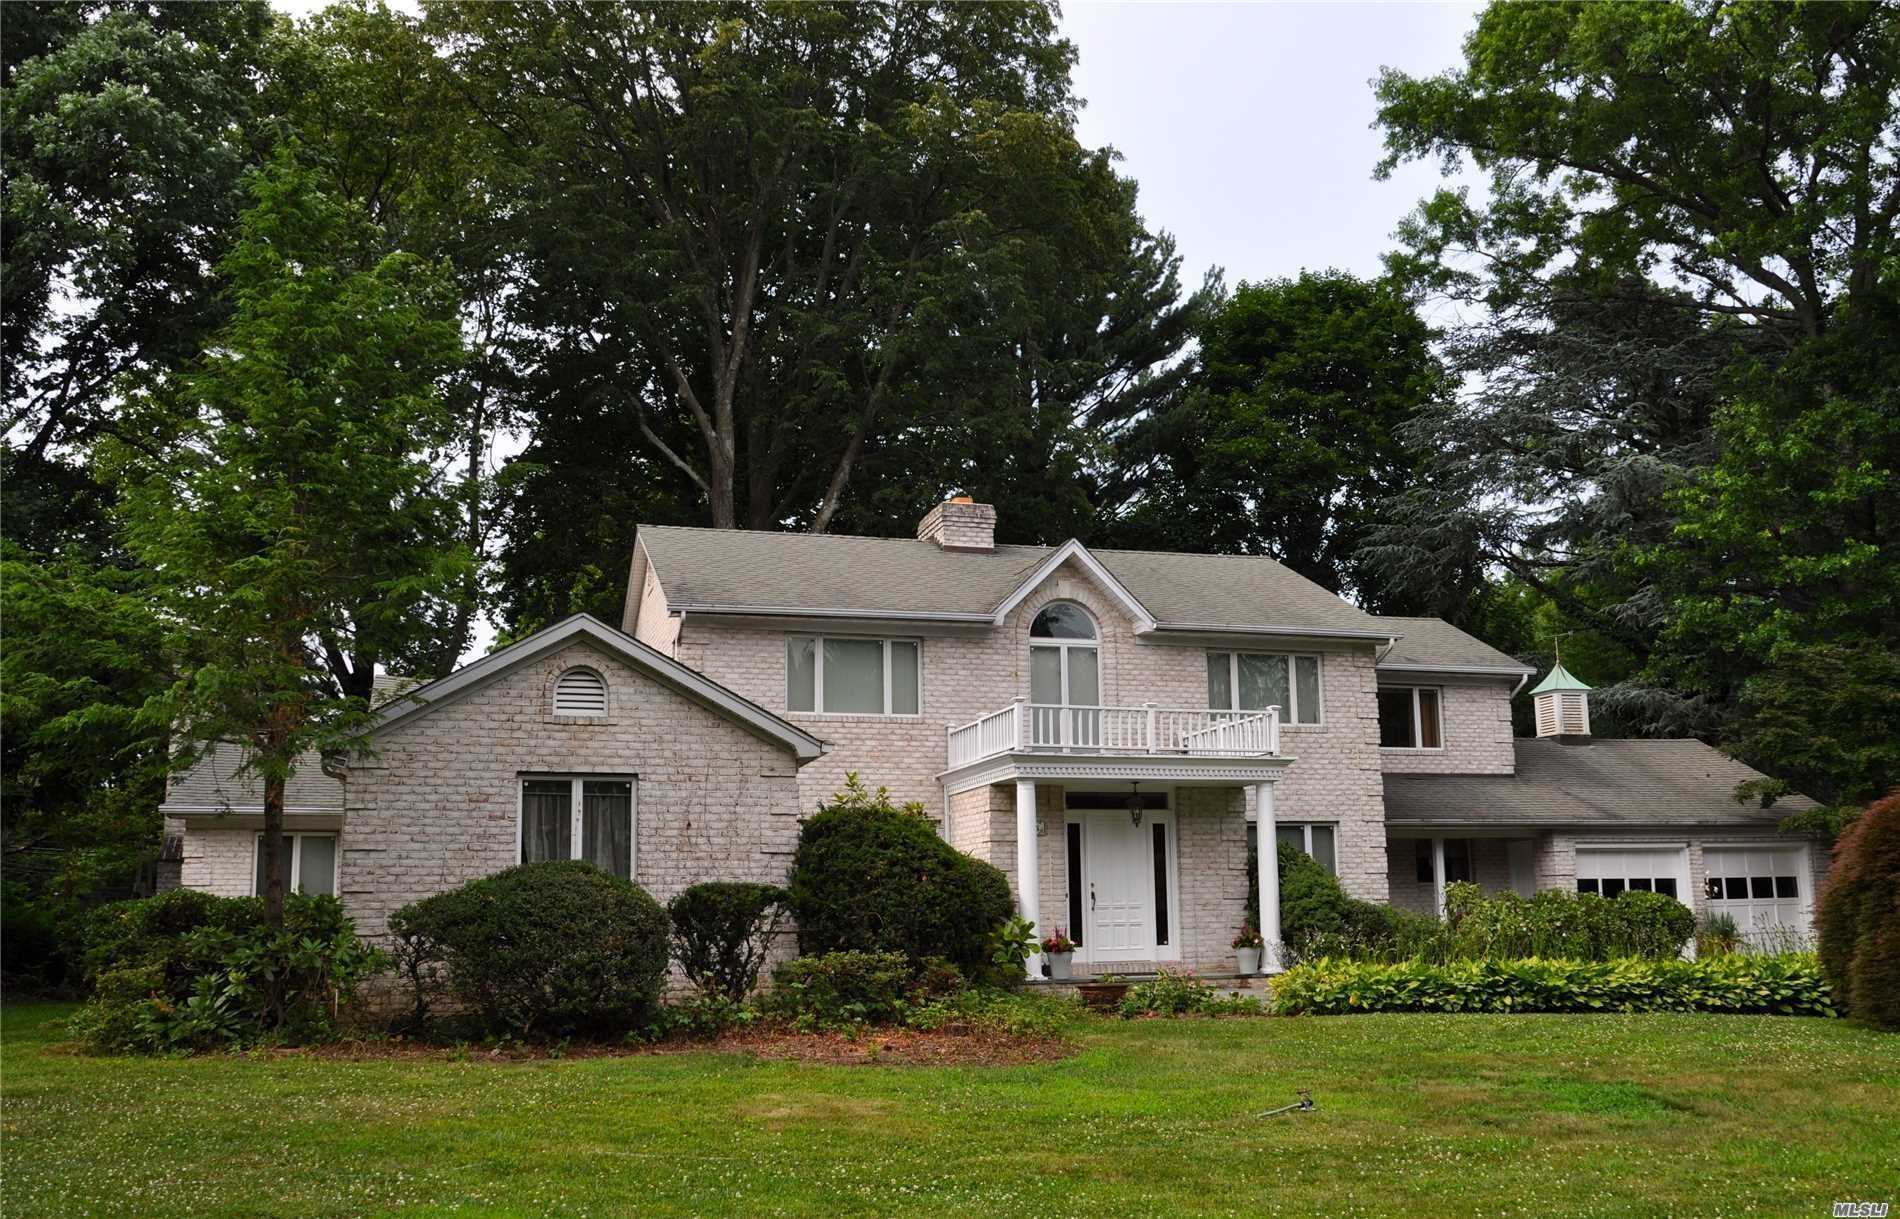 25 Hewlett Ln, one of homes for sale in Port Washington